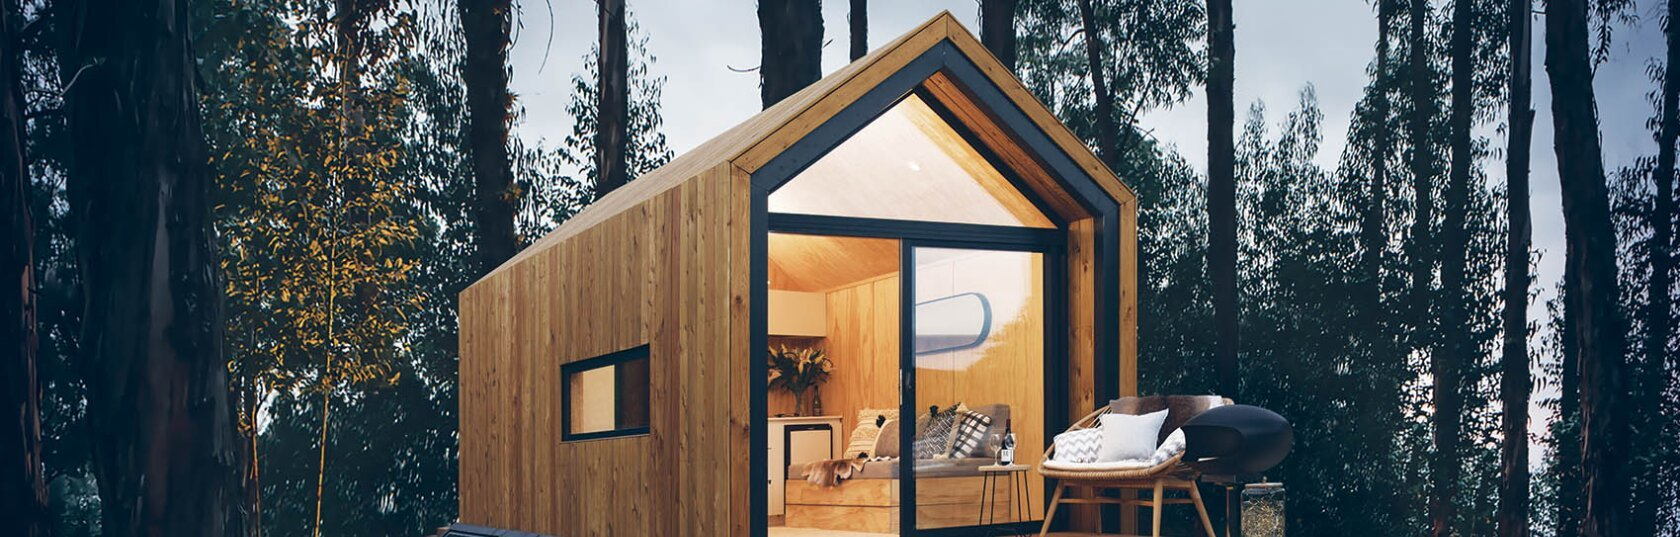 Seven Small Homes And Why The Tiny Movement Is Growing Architecture Nz